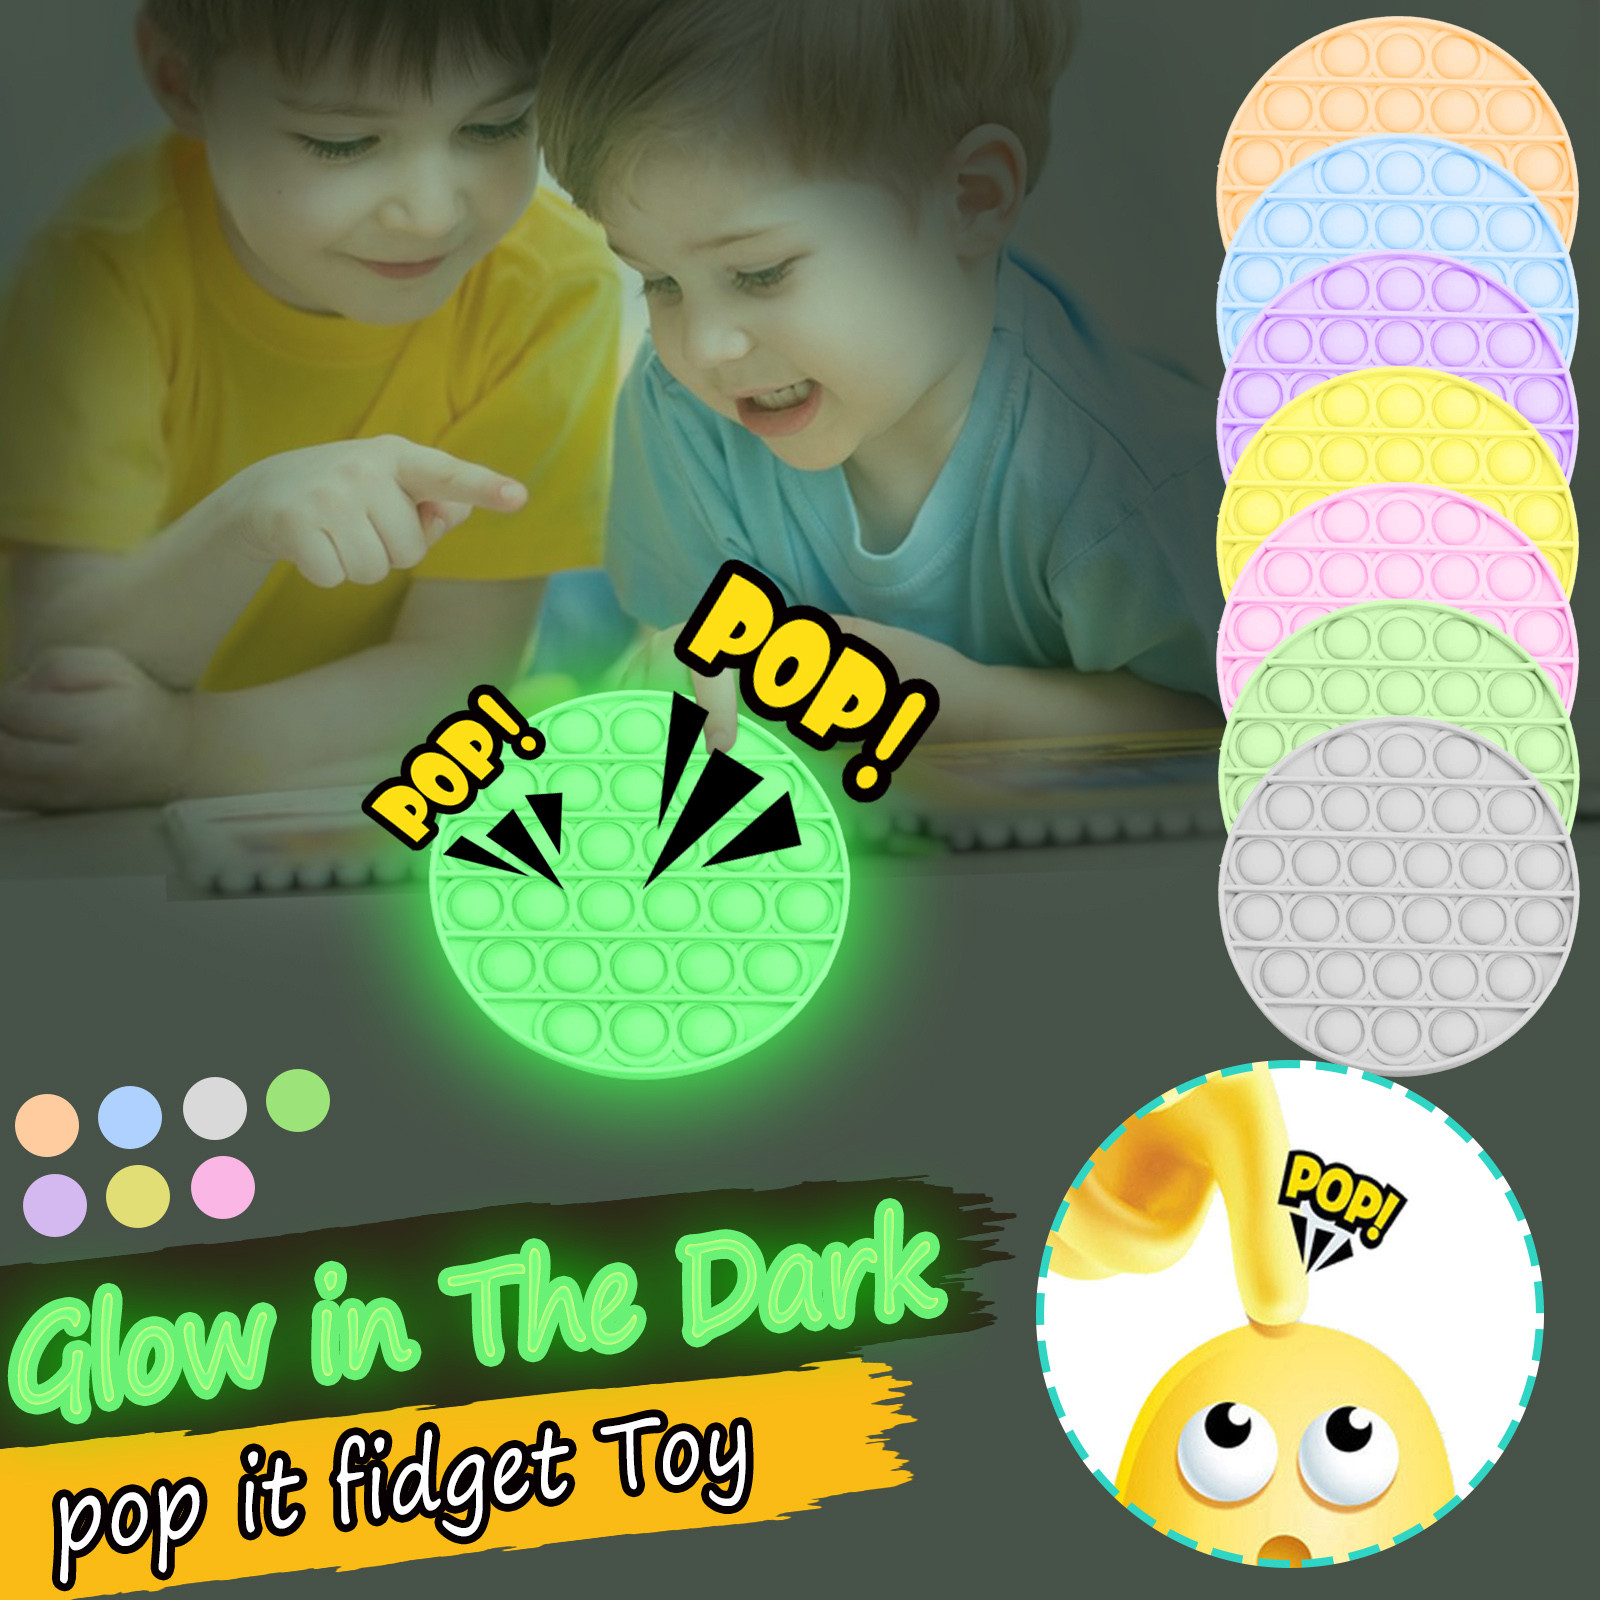 Toy Bubble-Fidget Fidget-Sensory Toy-Stress Relief Adult Glow-In-The-Dark Push Kids